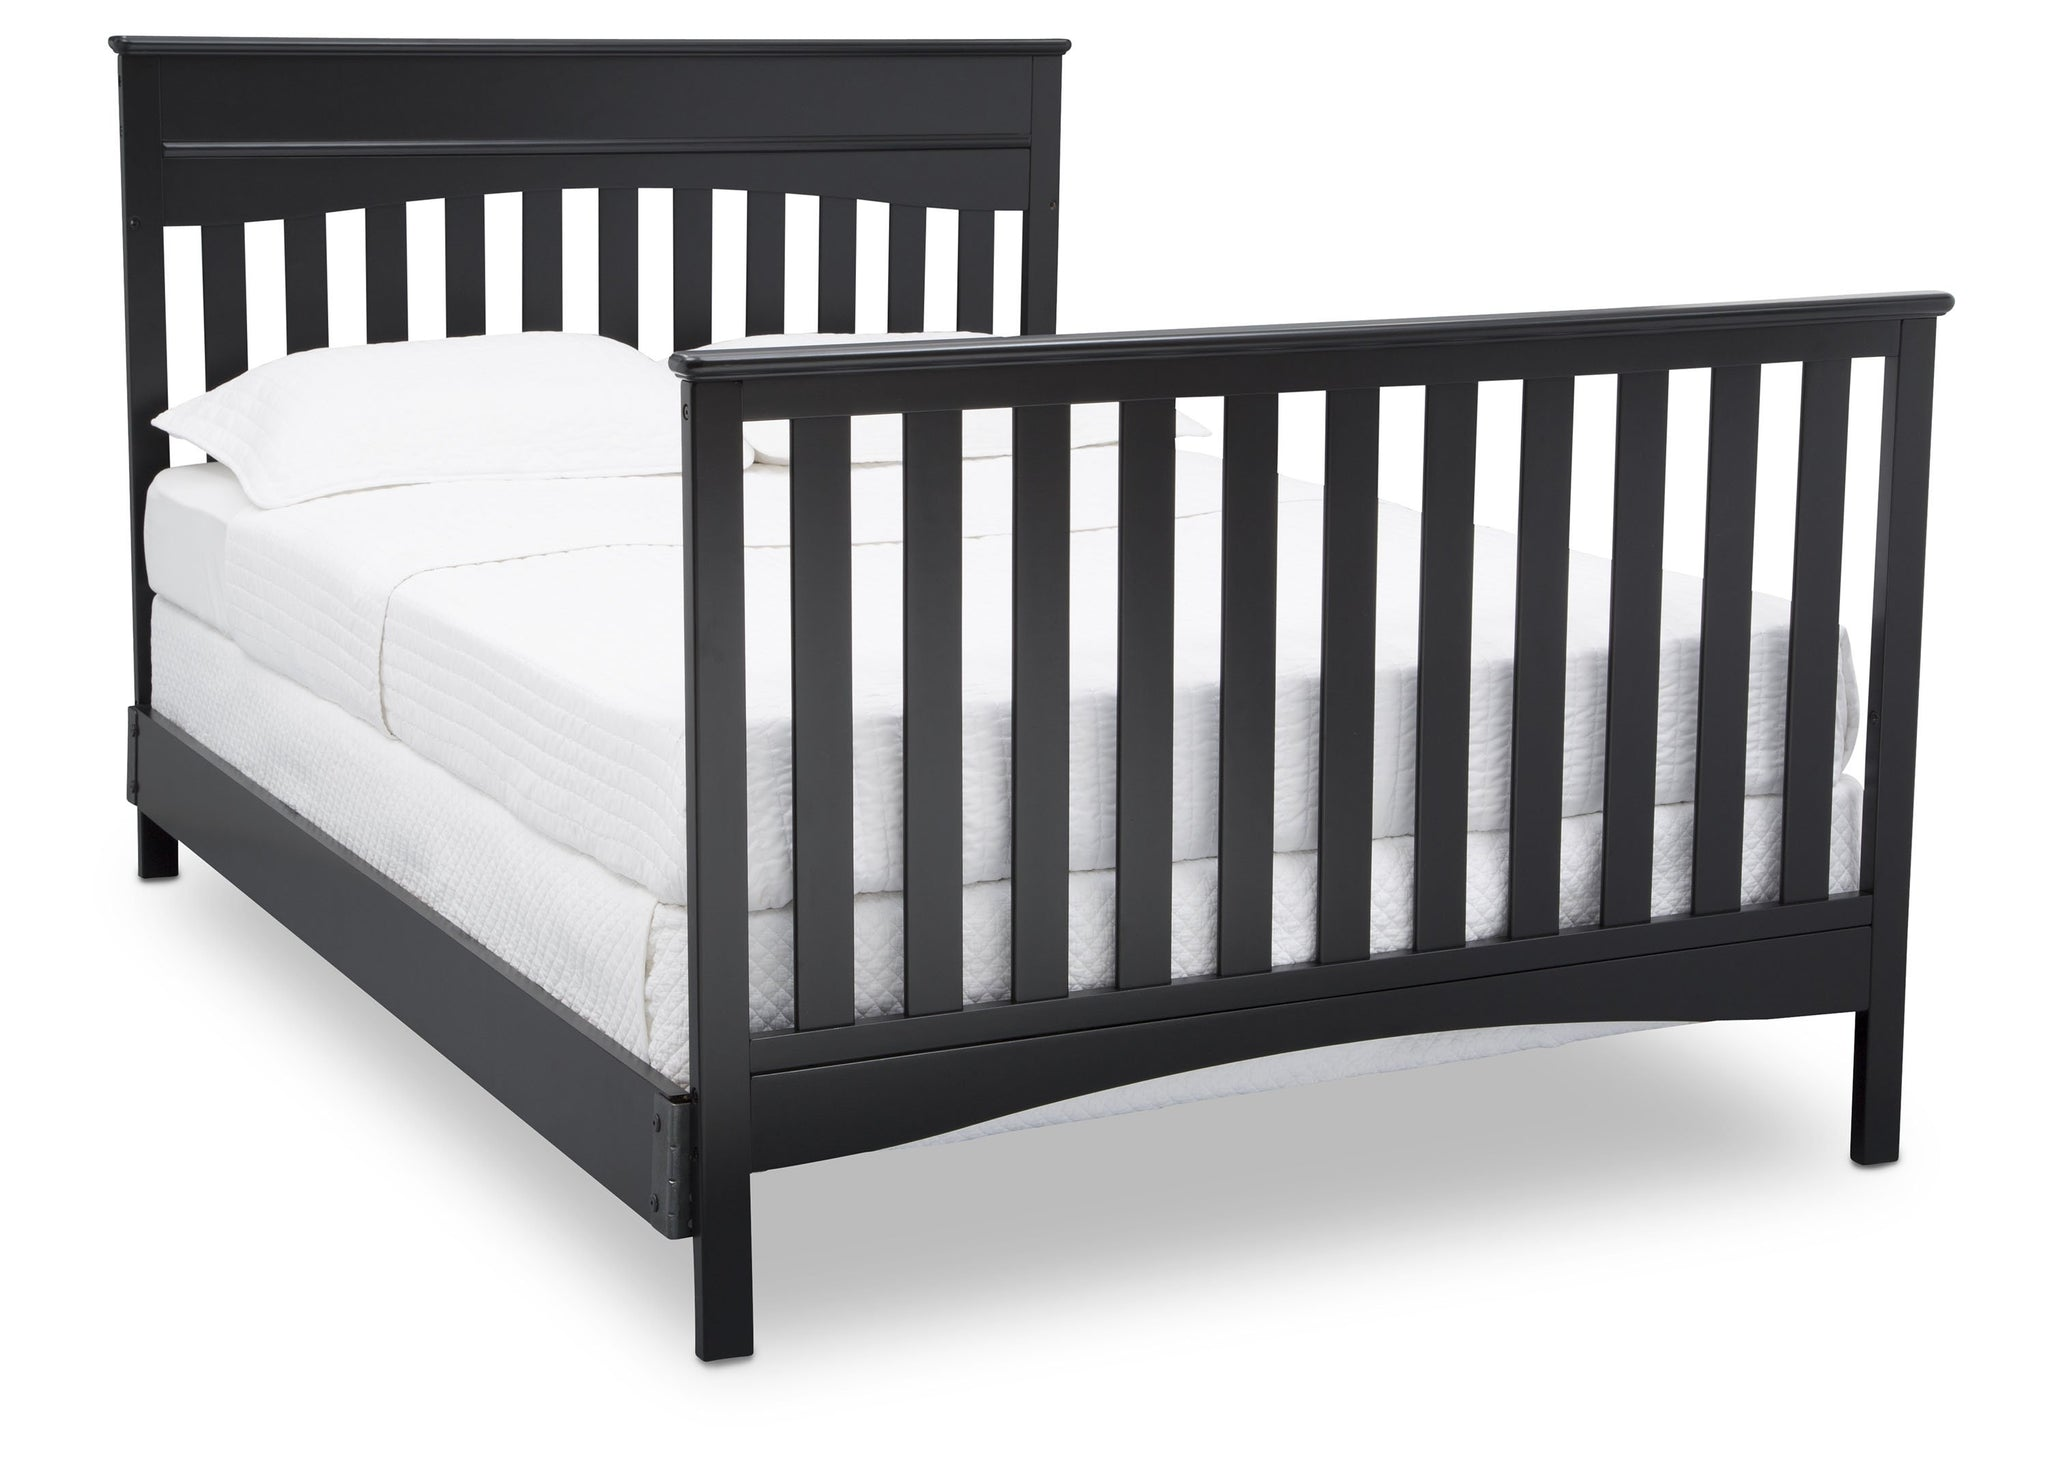 Delta Children Ebony (0011) Skylar 4-in-1 Convertible Crib (558150), Full Size Bed with Footboard, a6a